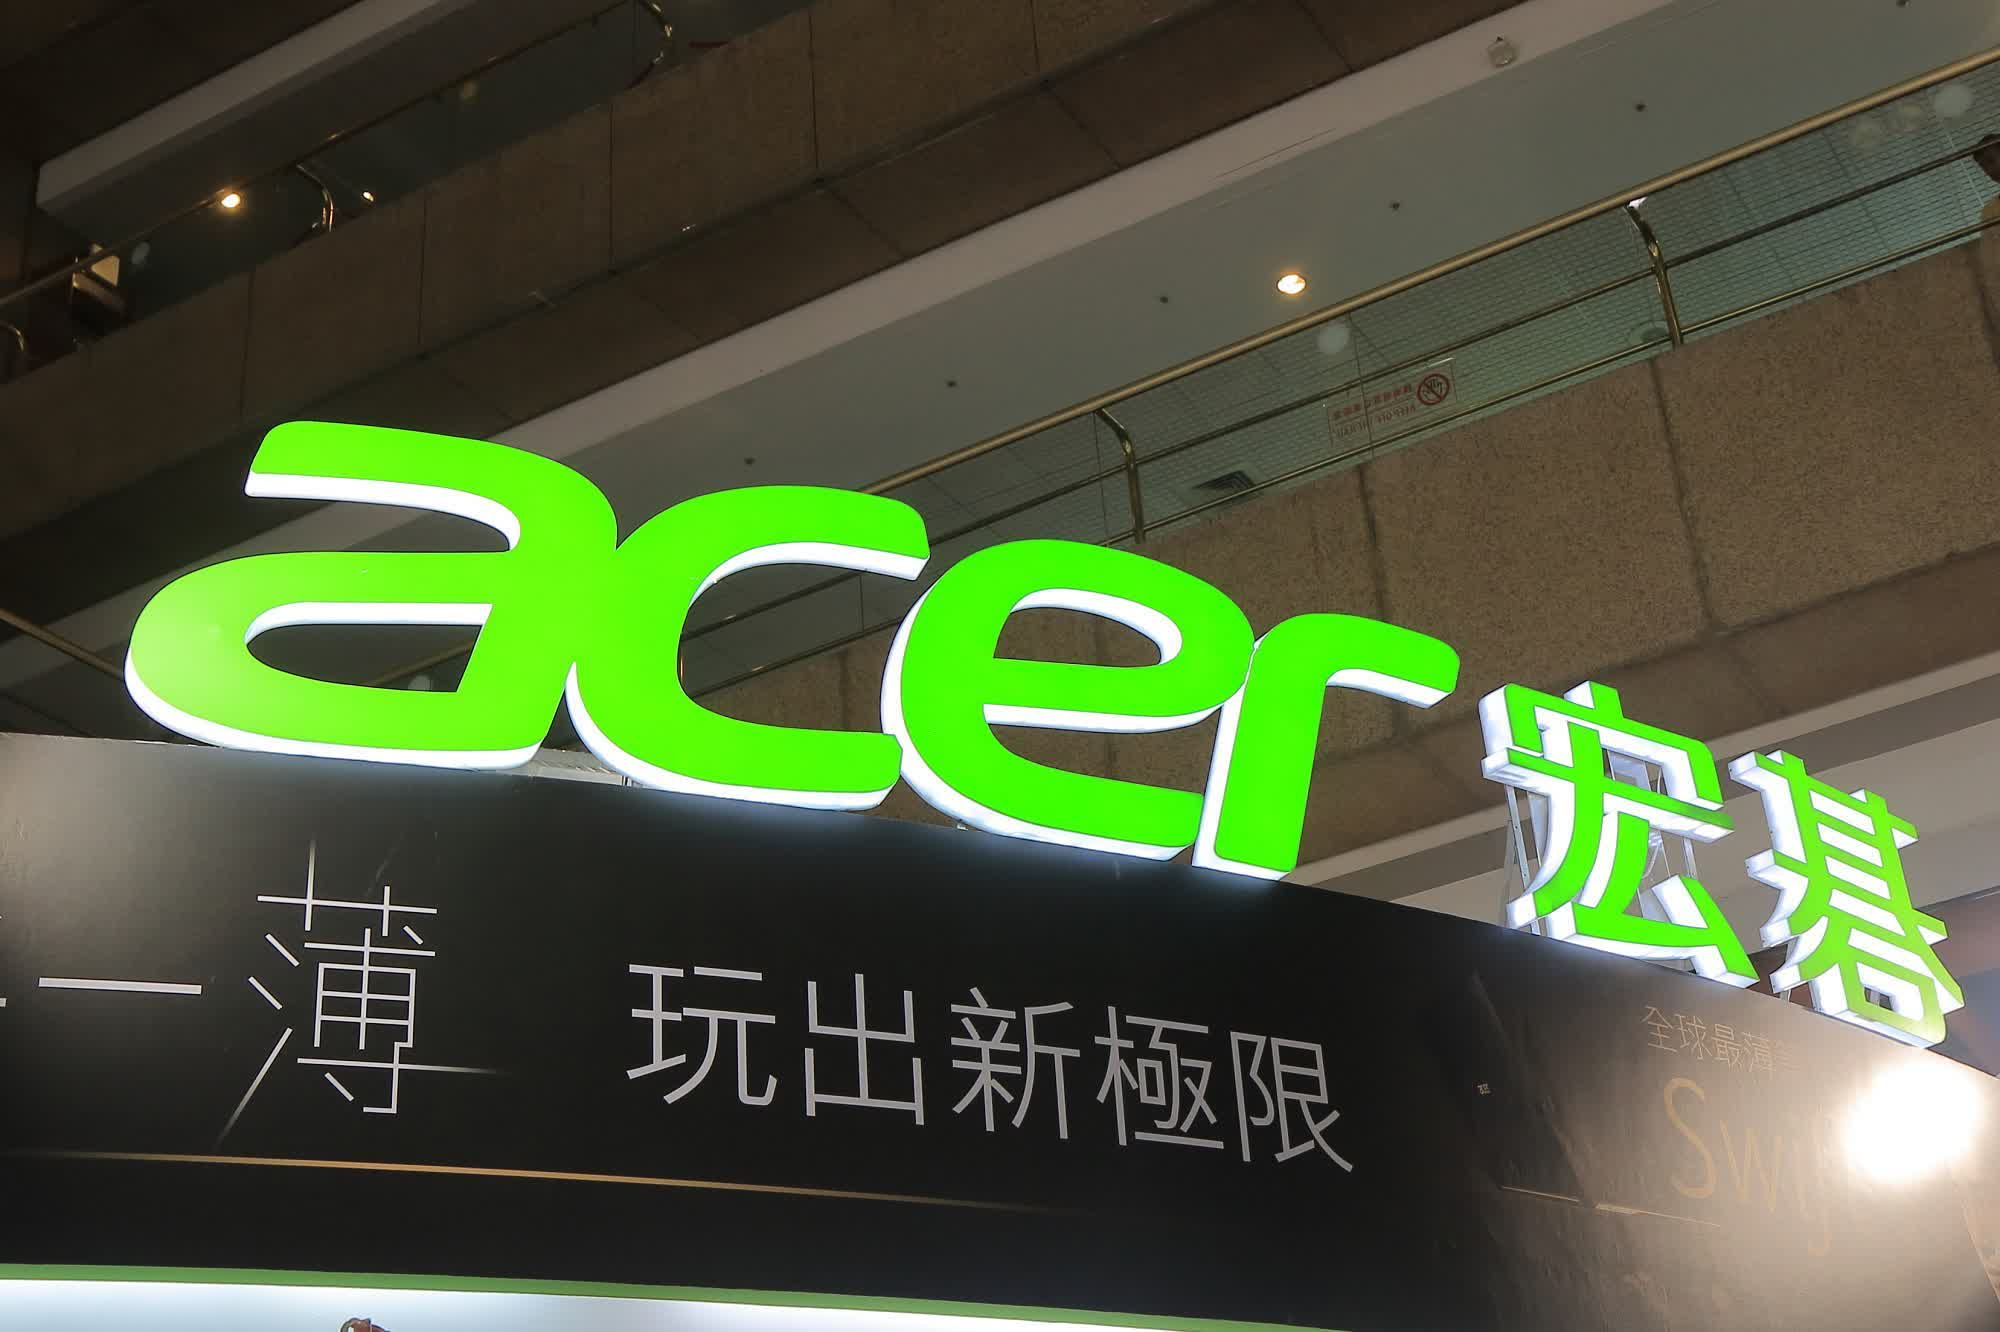 Acer warns that chip shortage will impact laptop production until 2022